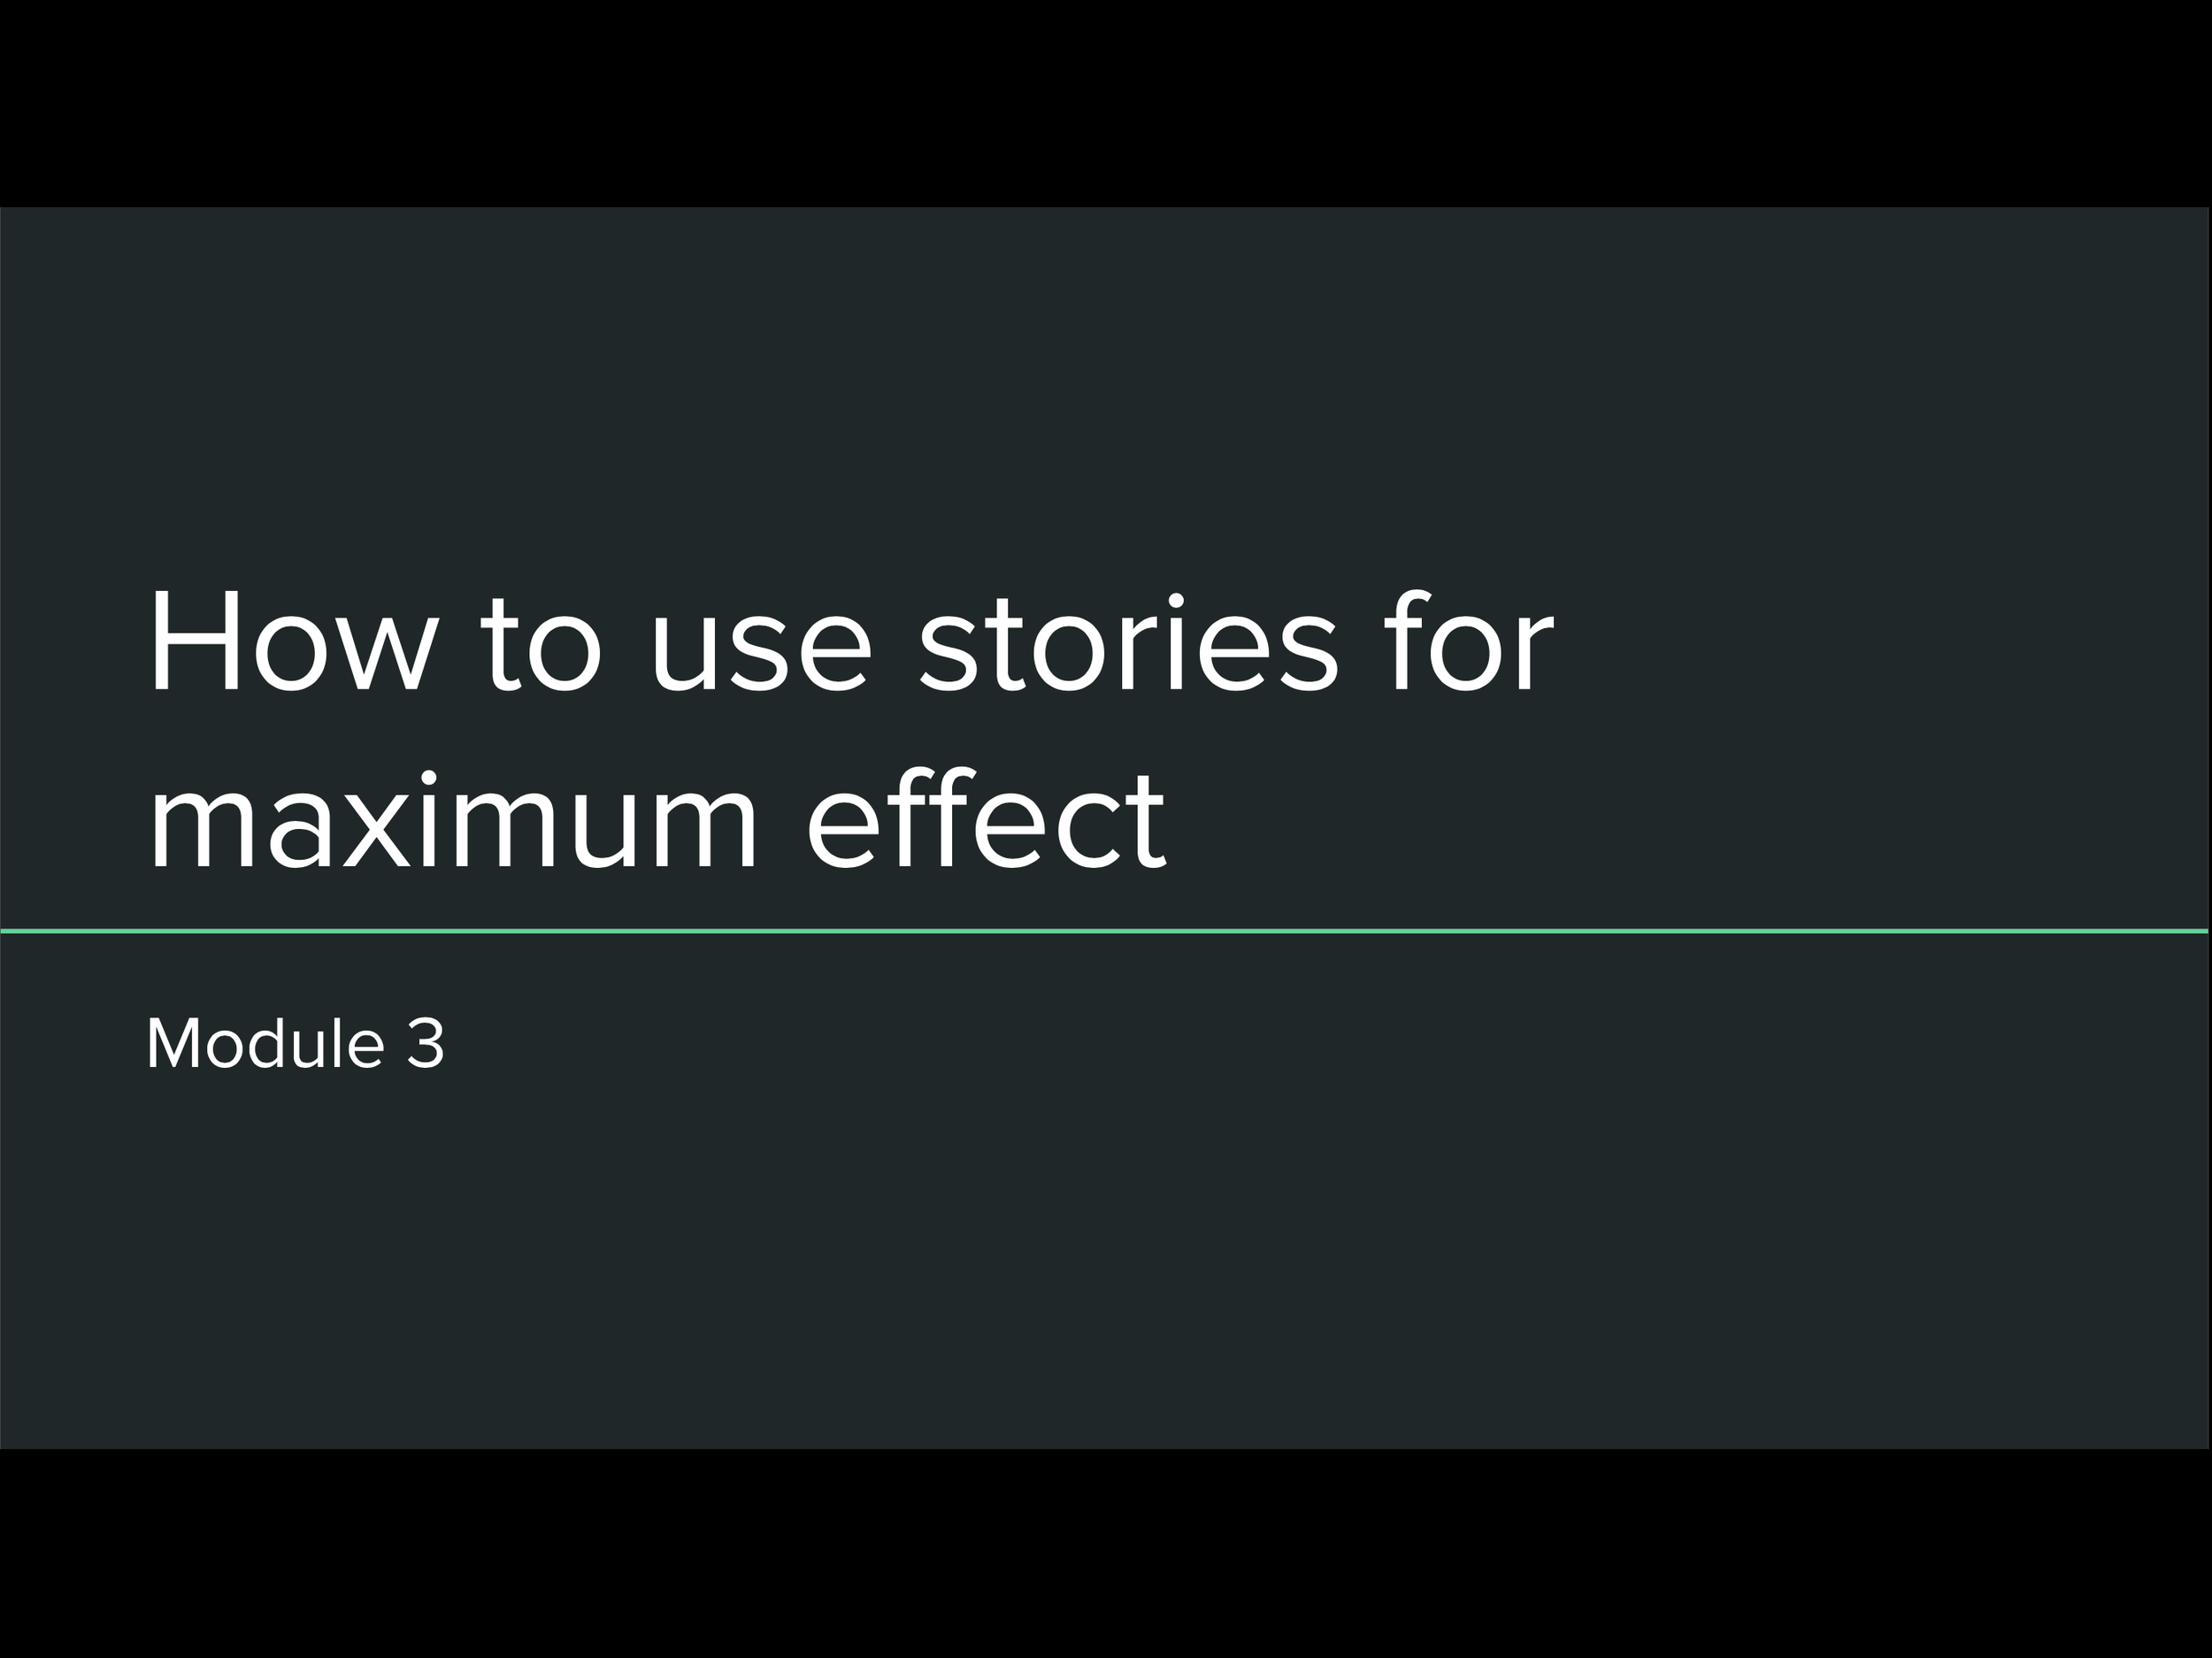 Module 3: How to user stories for maximum effect